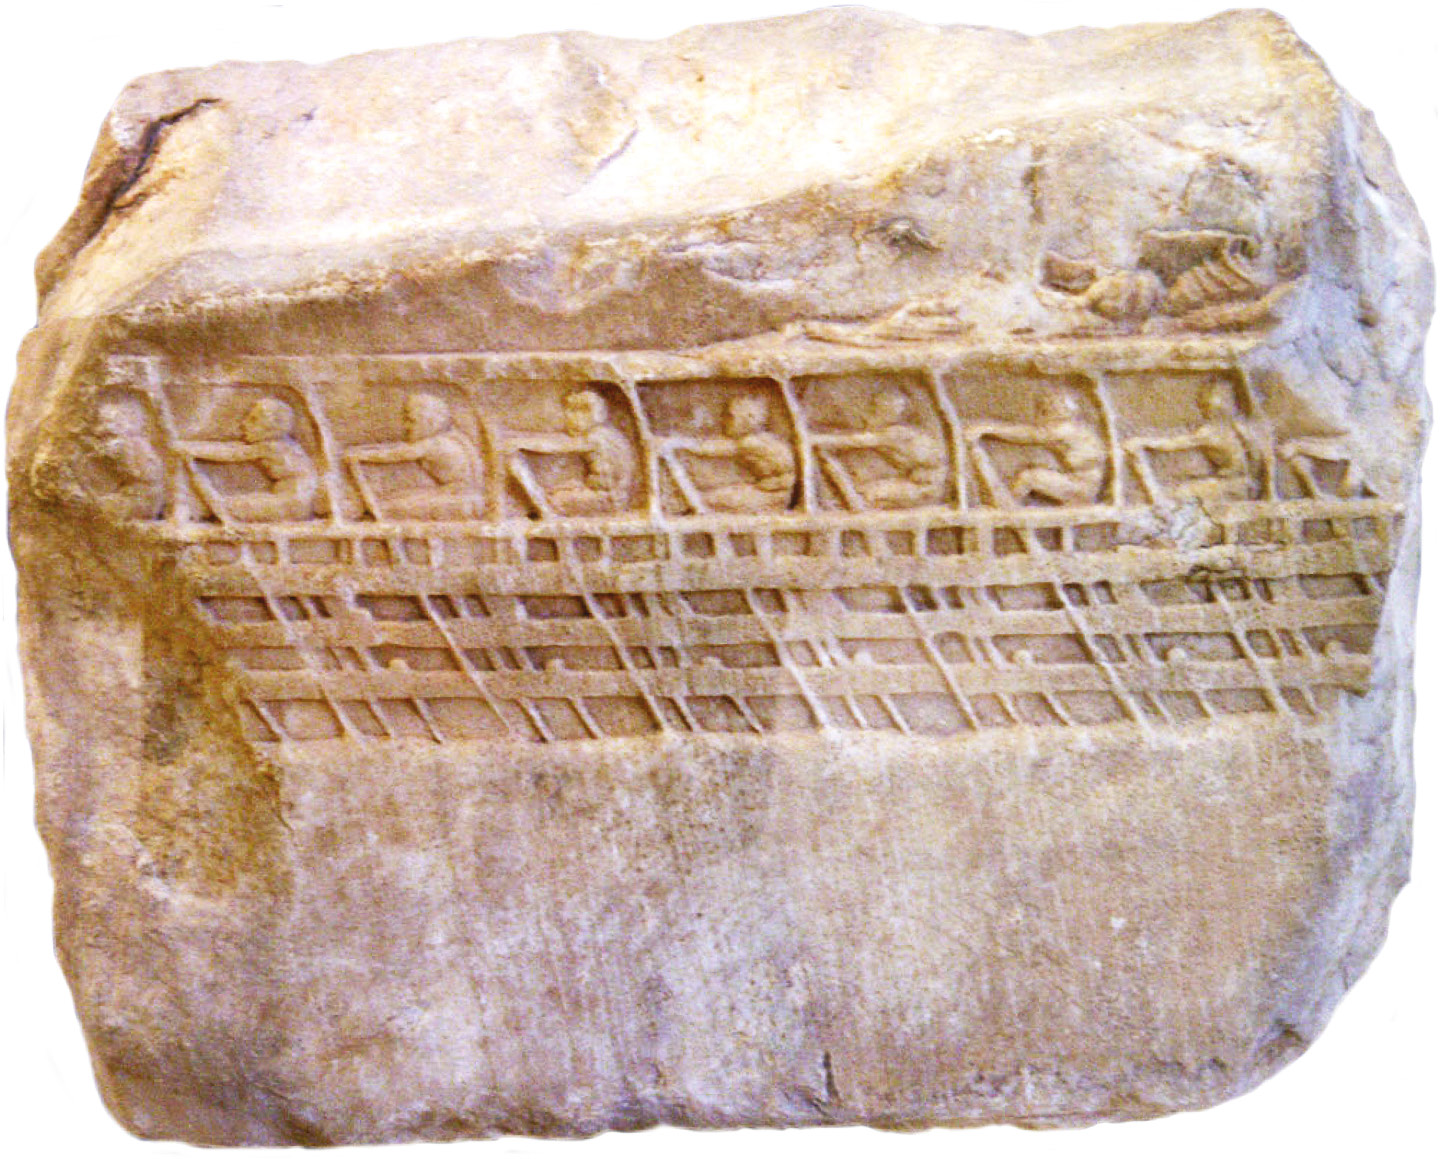 left An Athenian trireme of c.400 BC. The trireme revolutionised naval warfare and represented a mortal threat to Sparta since the Persian fleet might have outflanked the Isthmus at Corinth and landed a Persian army on the Peloponnesian coast. BELOW The Leonidas monument at Thermoplyae, where 300 Spartans fought to the death to defend the pass that led into central Greece.